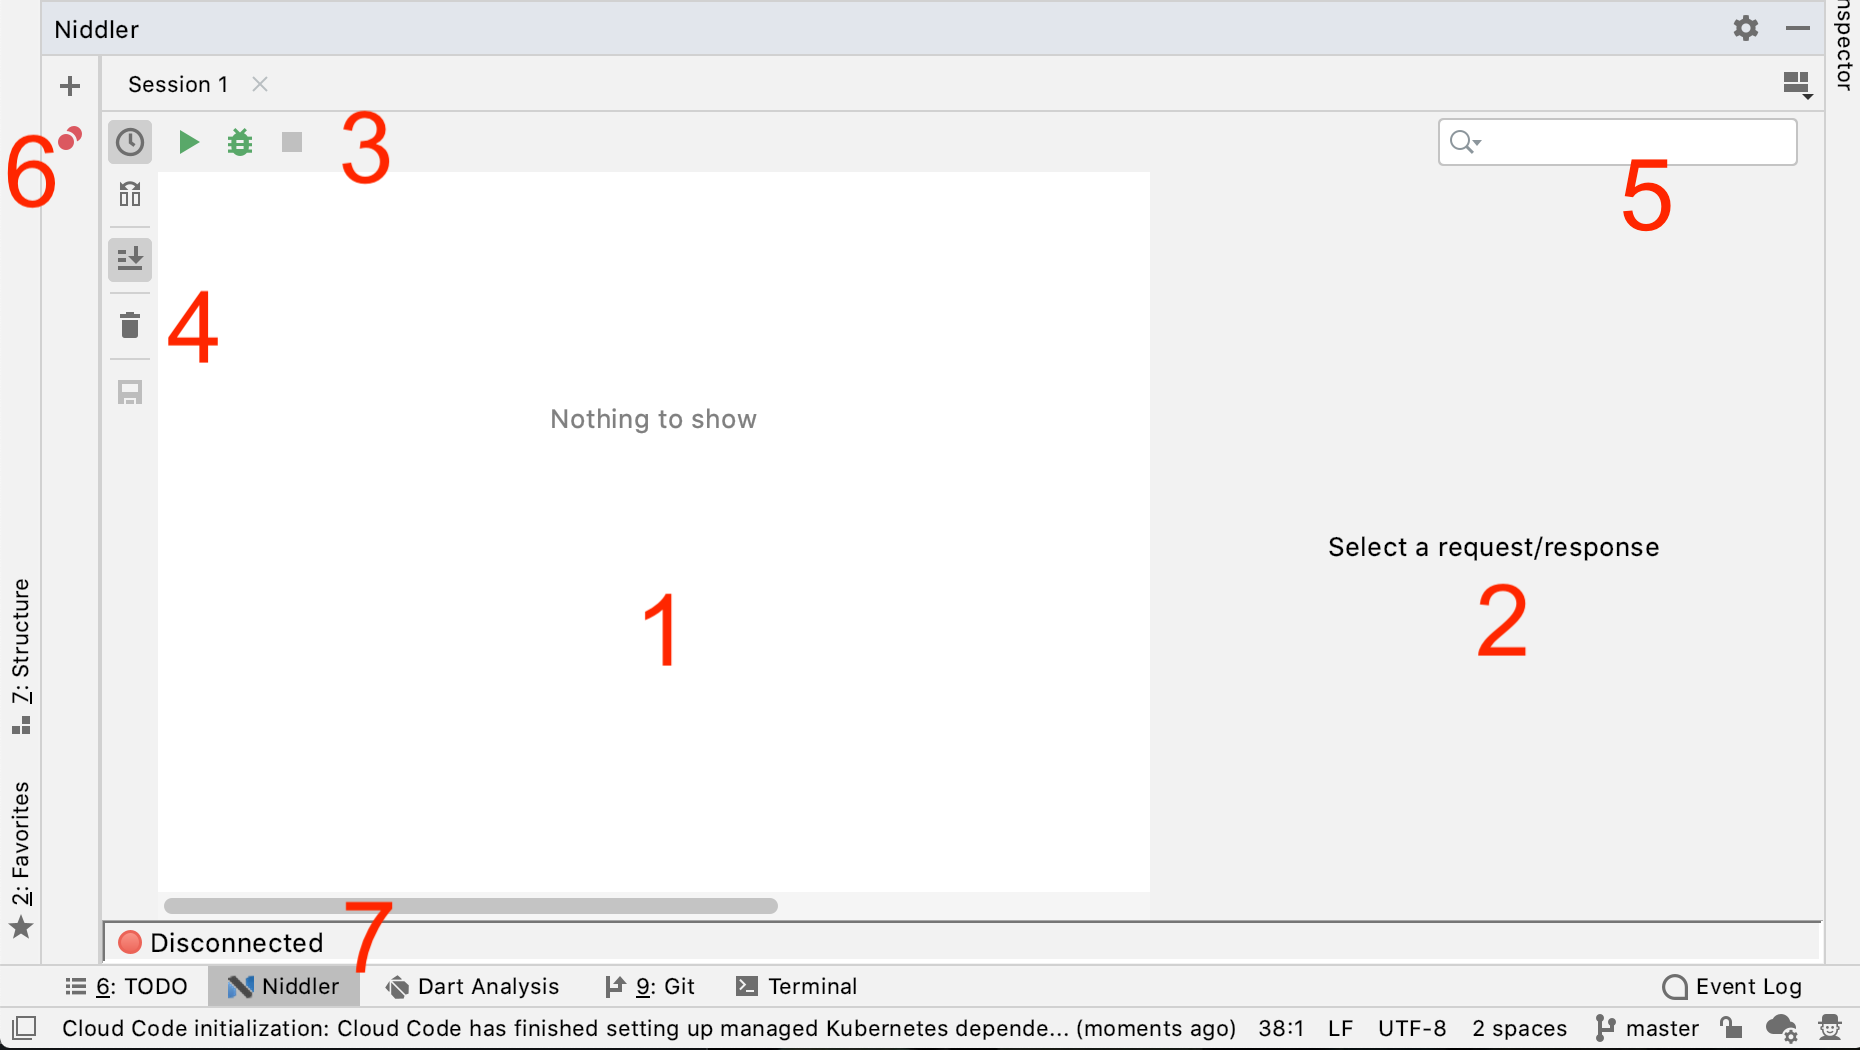 Screenshot of the niddler interface, annotated to include most important interaction areas